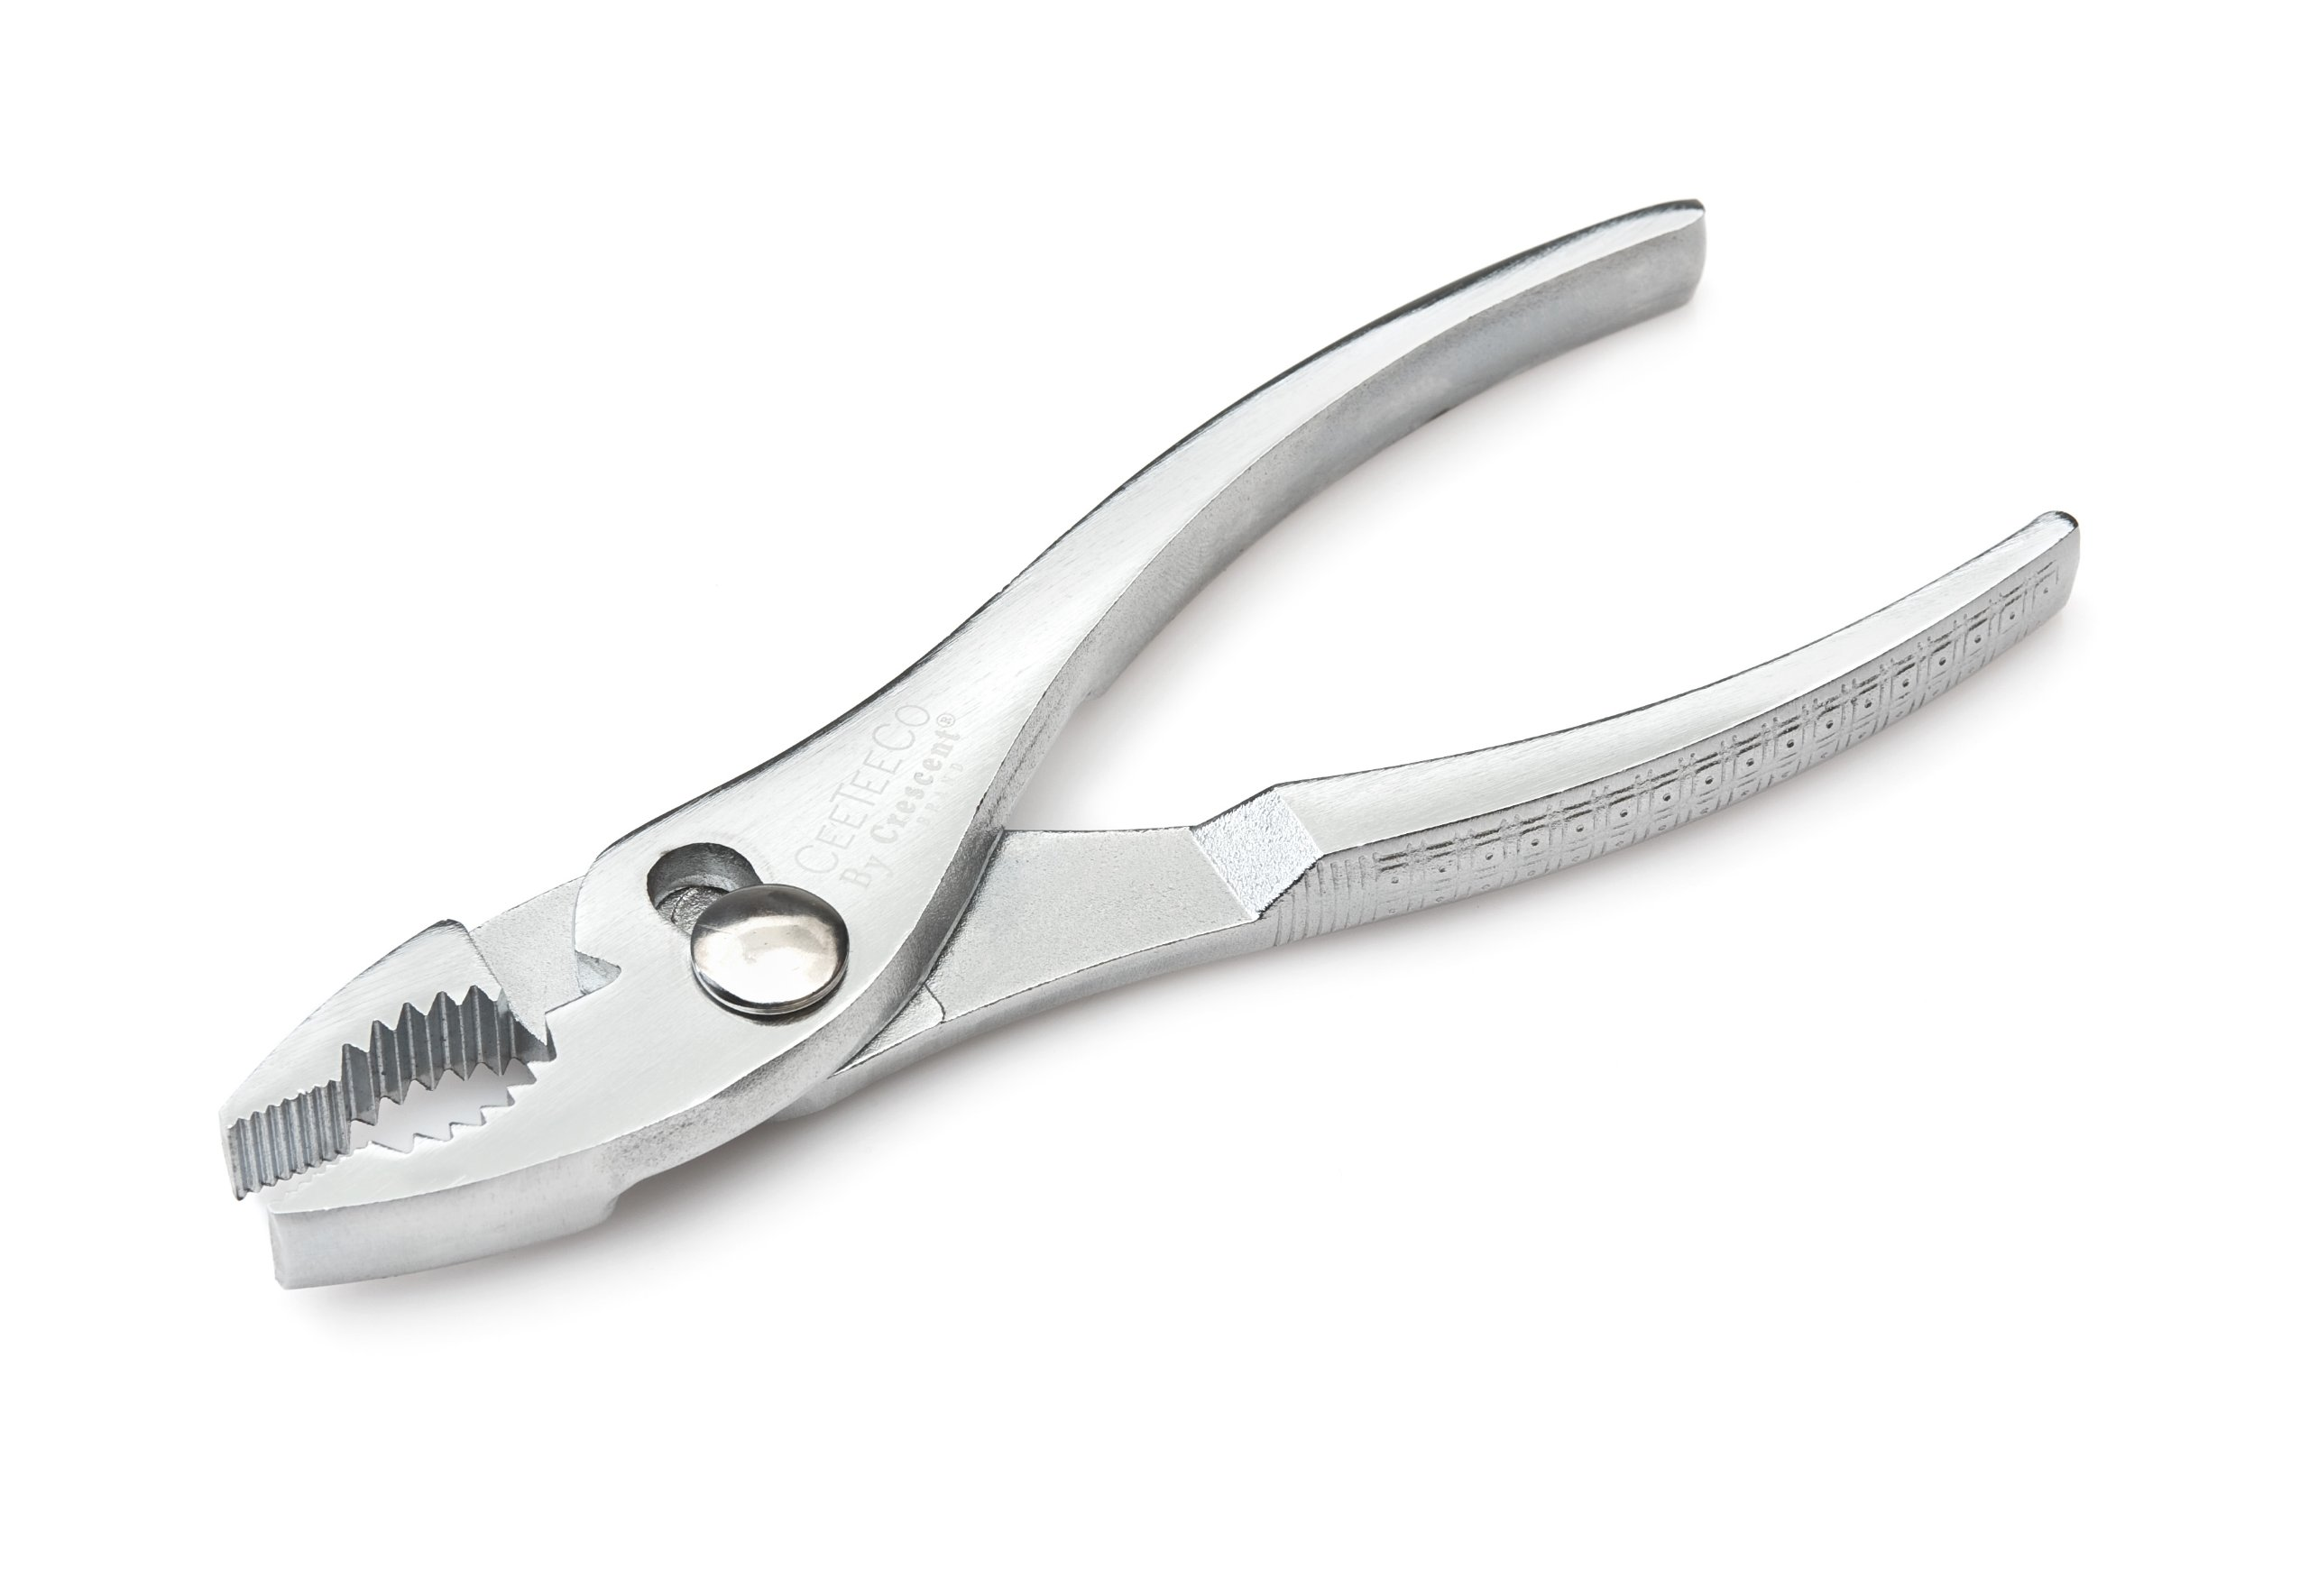 Crescent H26N Slip Joint Cee Tee Co Combination Pliers, 6 1/2-Inch